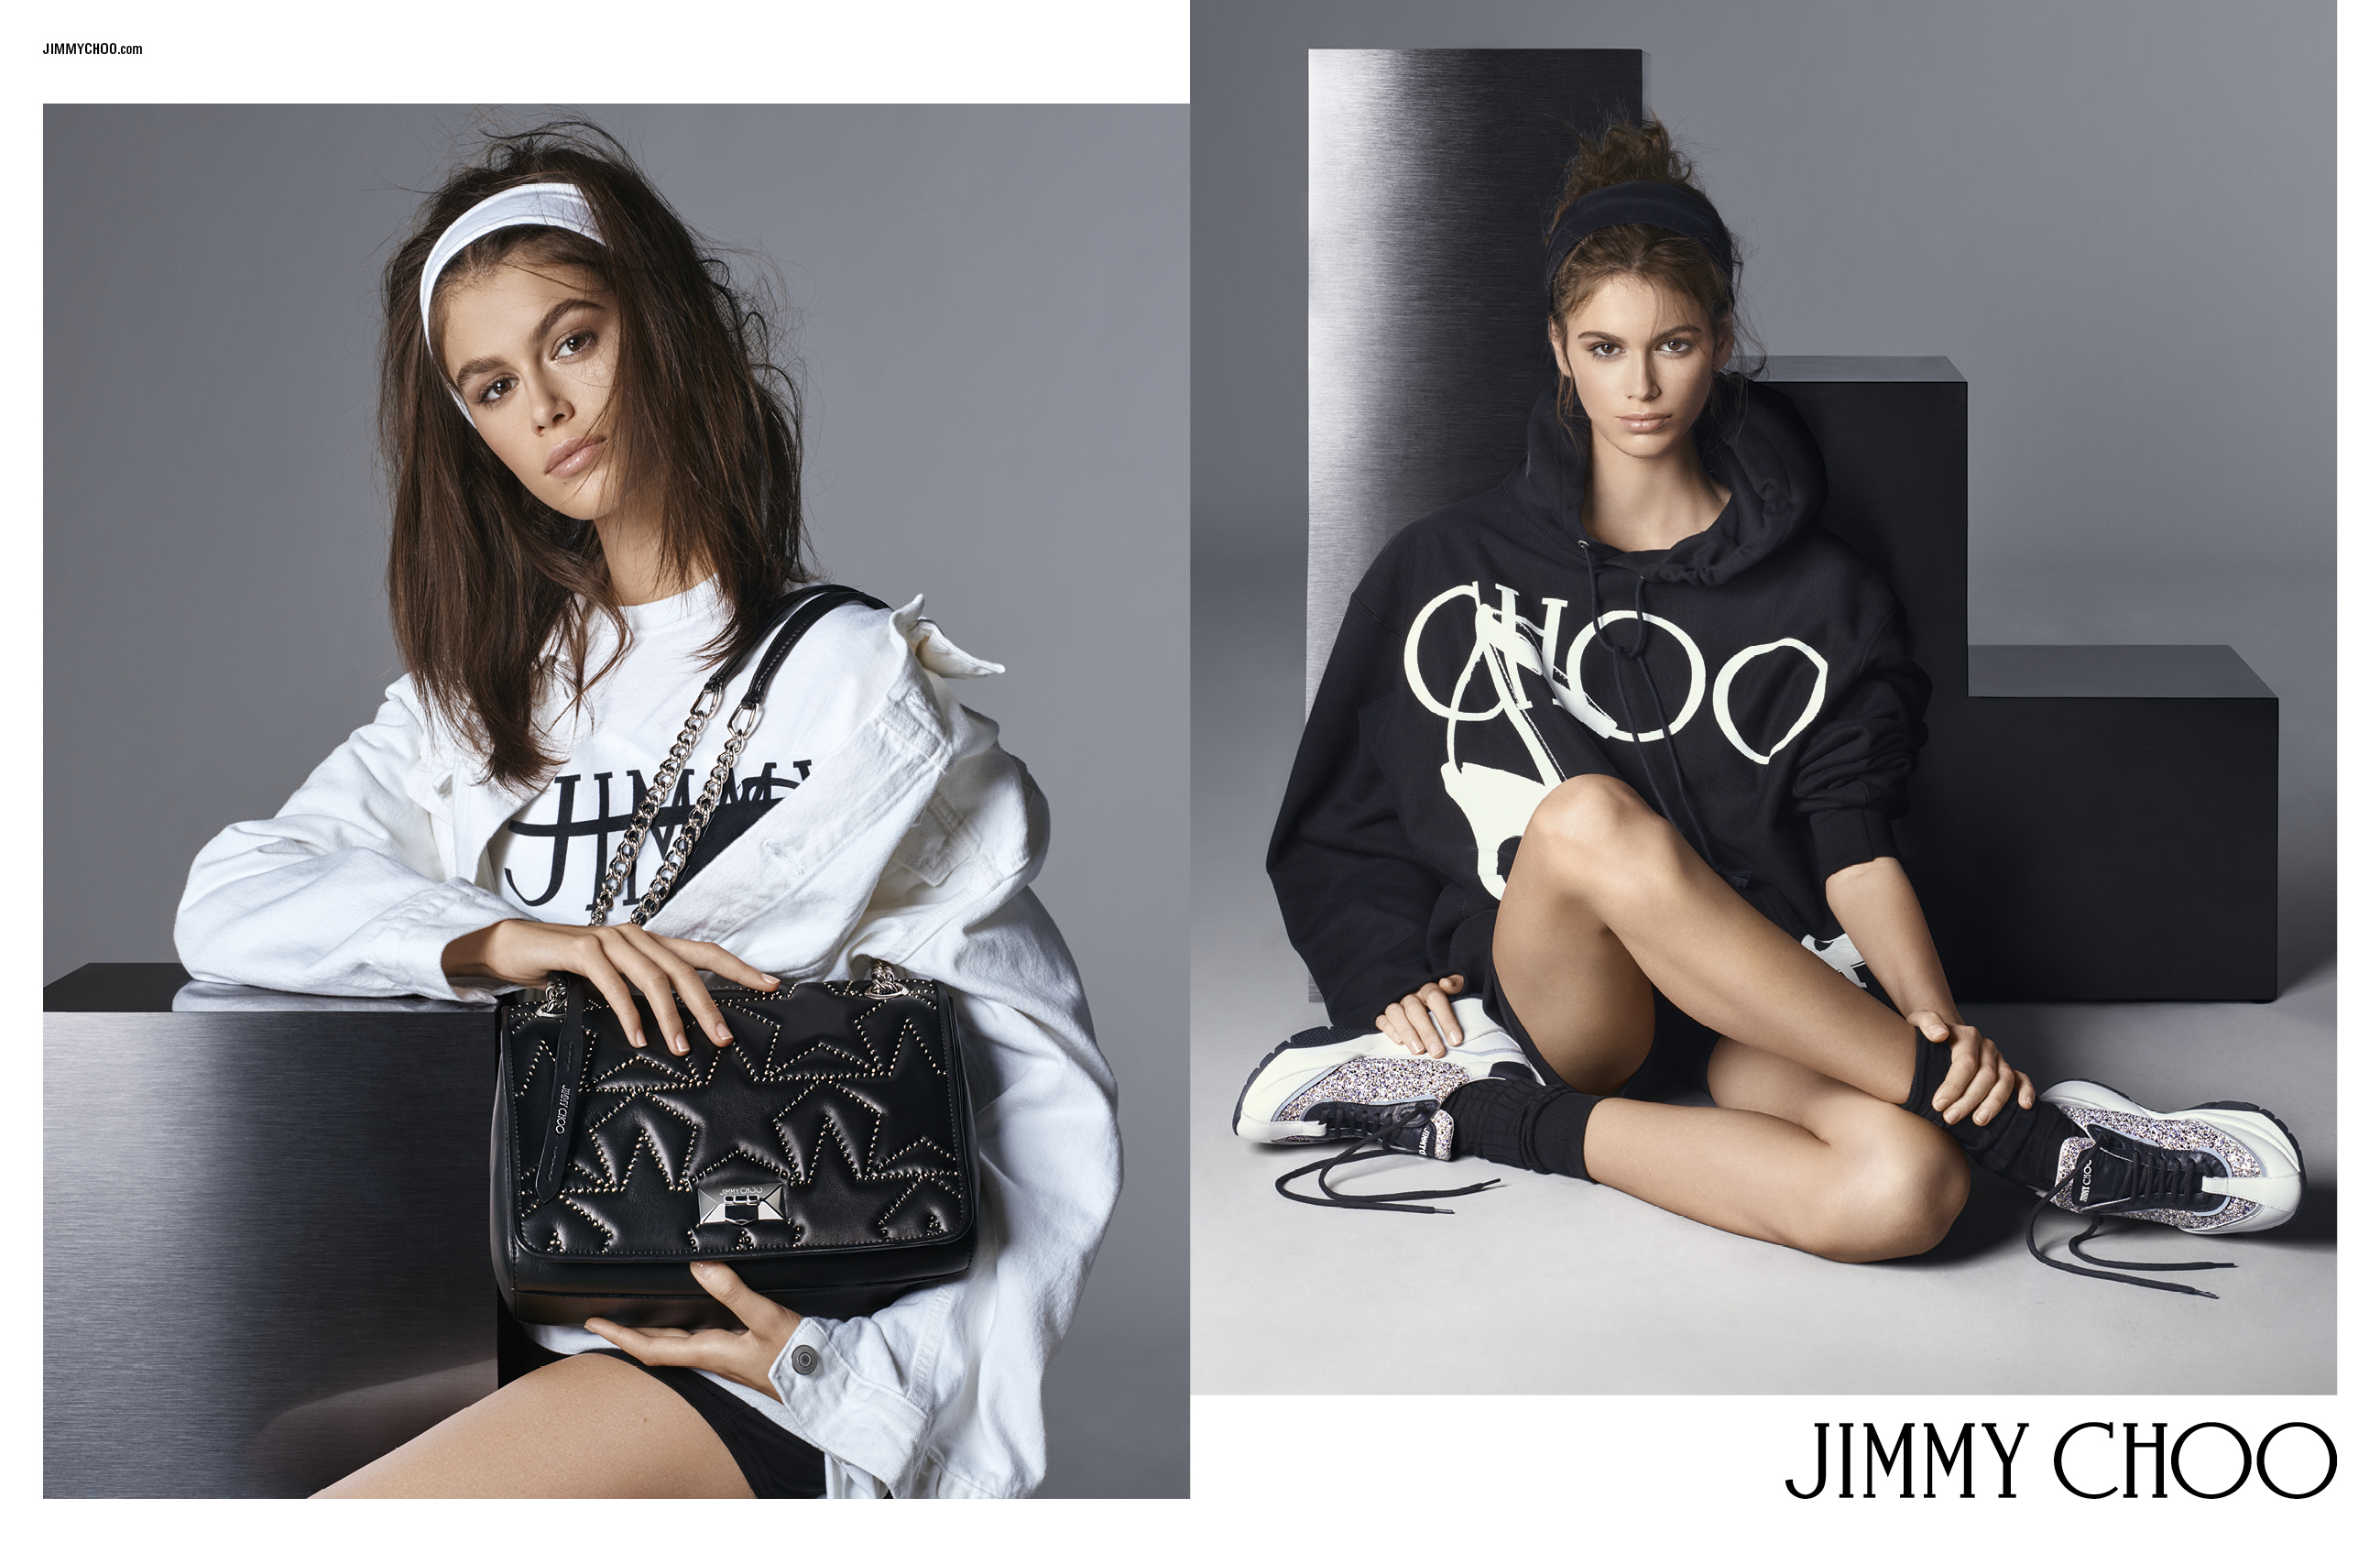 Jimmy Choo Spring 2019 Ad Campaign